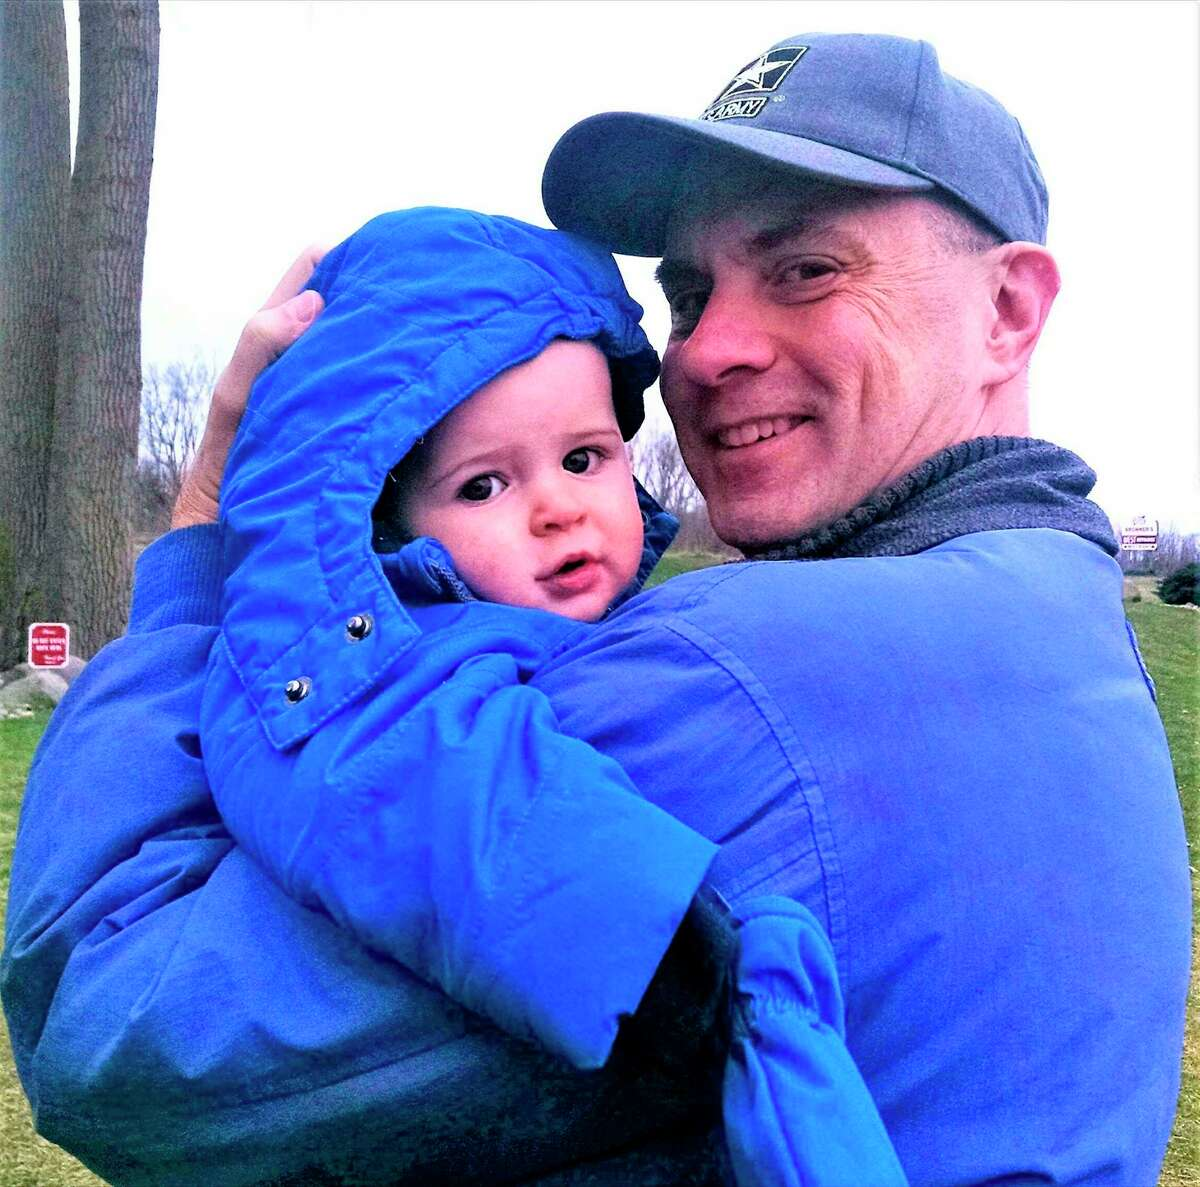 Gary Glenn is pictured with his grandson. (Photo provided)